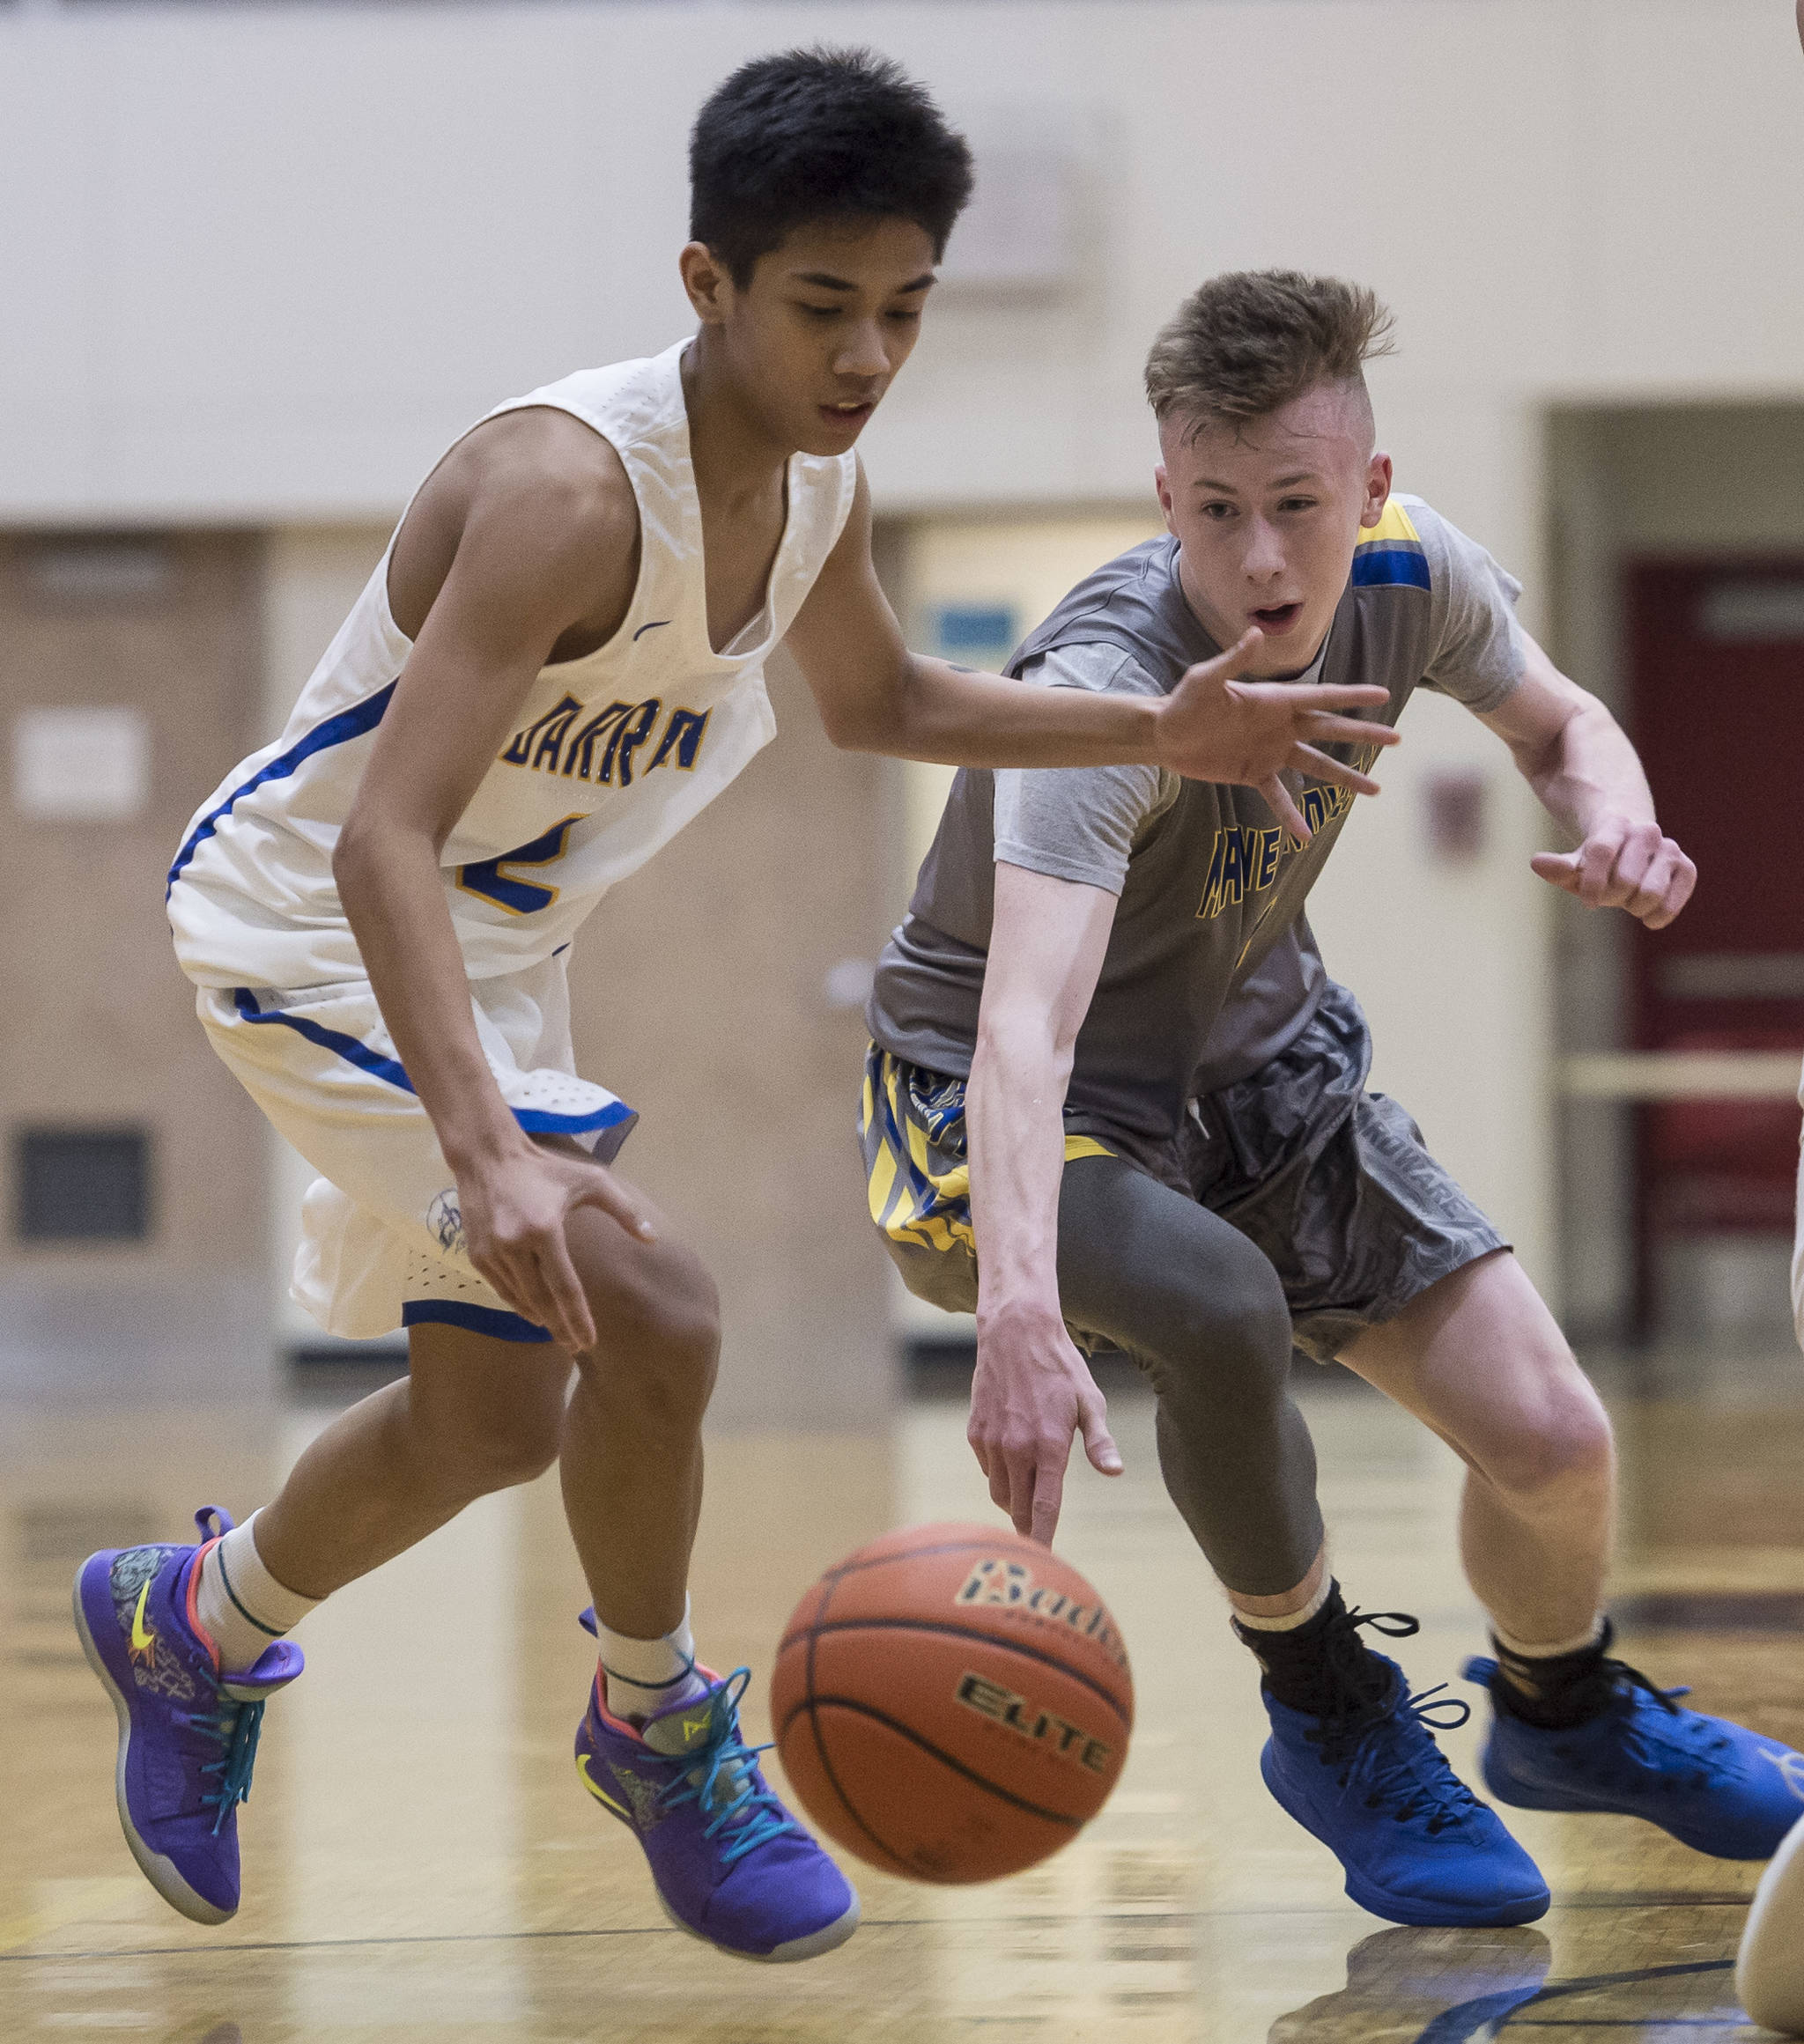 Barrow's Karl Nobleza, left, and Maine-Endwell's Jack Coleman battle for a loose ball at the Princess Cruises Capital City Classic at Juneau-Douglas High School on Thursday, Dec. 27, 2018. Barrow won 73-69. (Michael Penn | Juneau Empire)